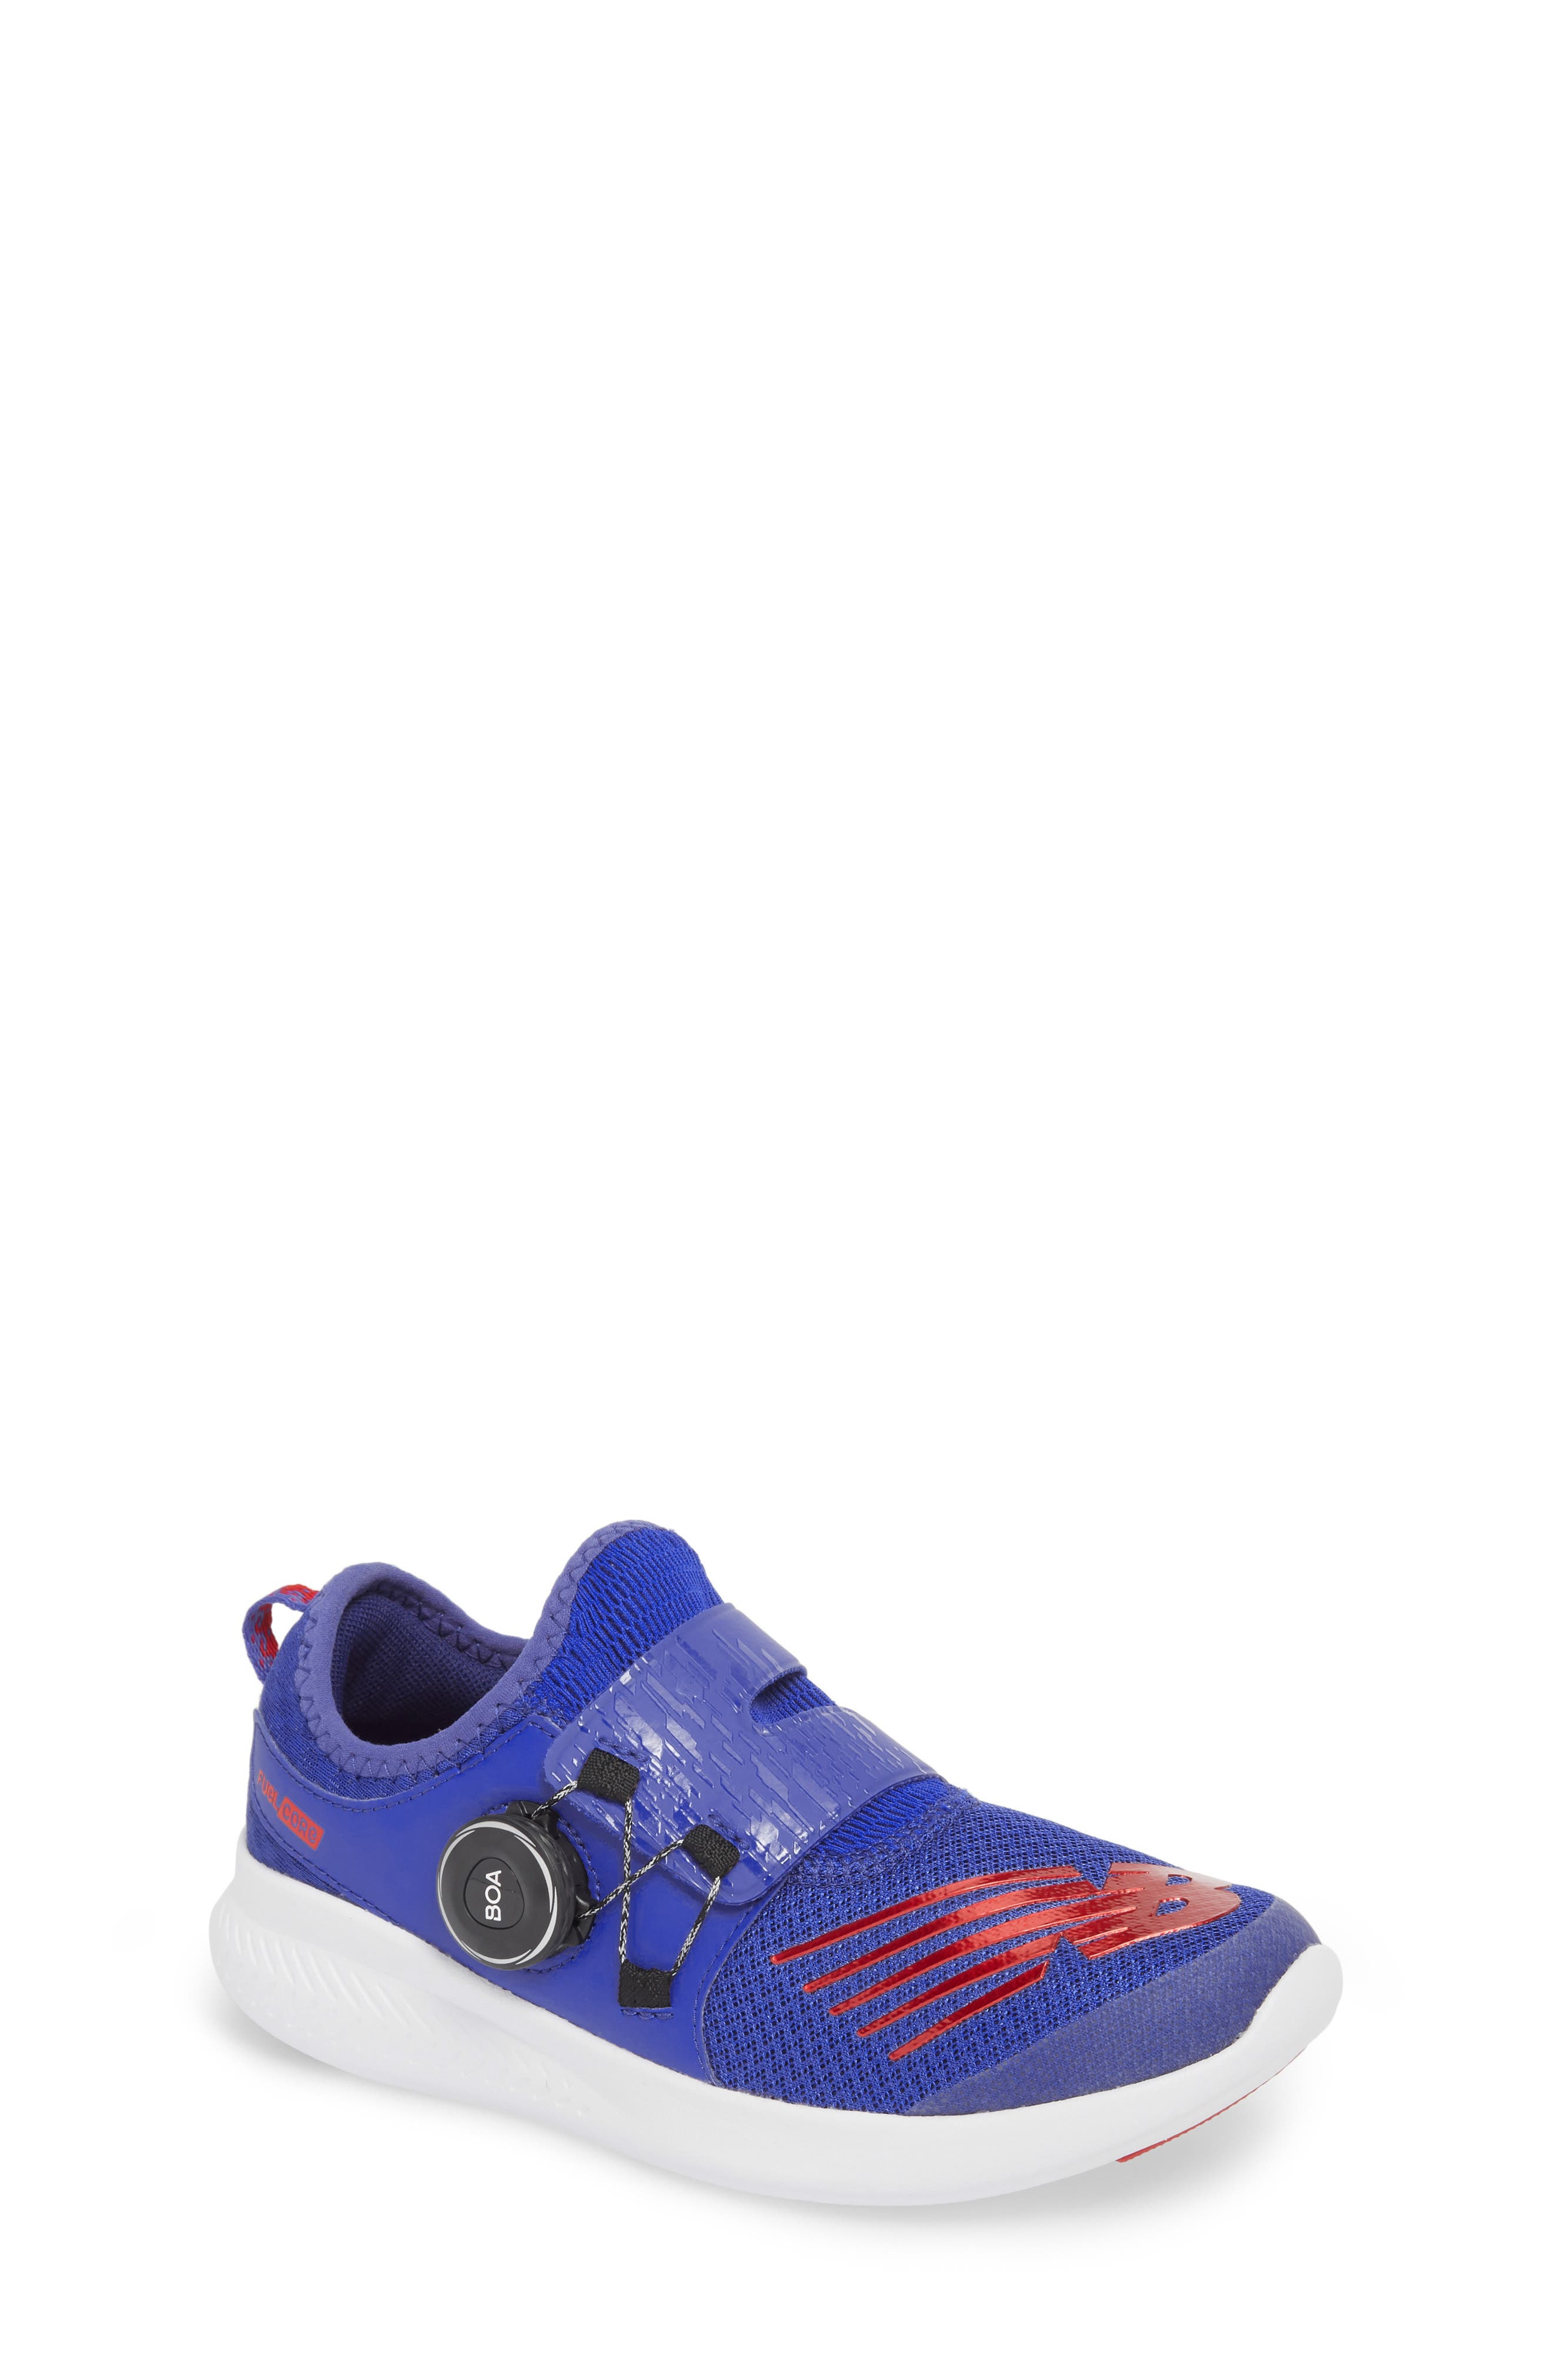 BKO Running Shoe,                             Main thumbnail 3, color,